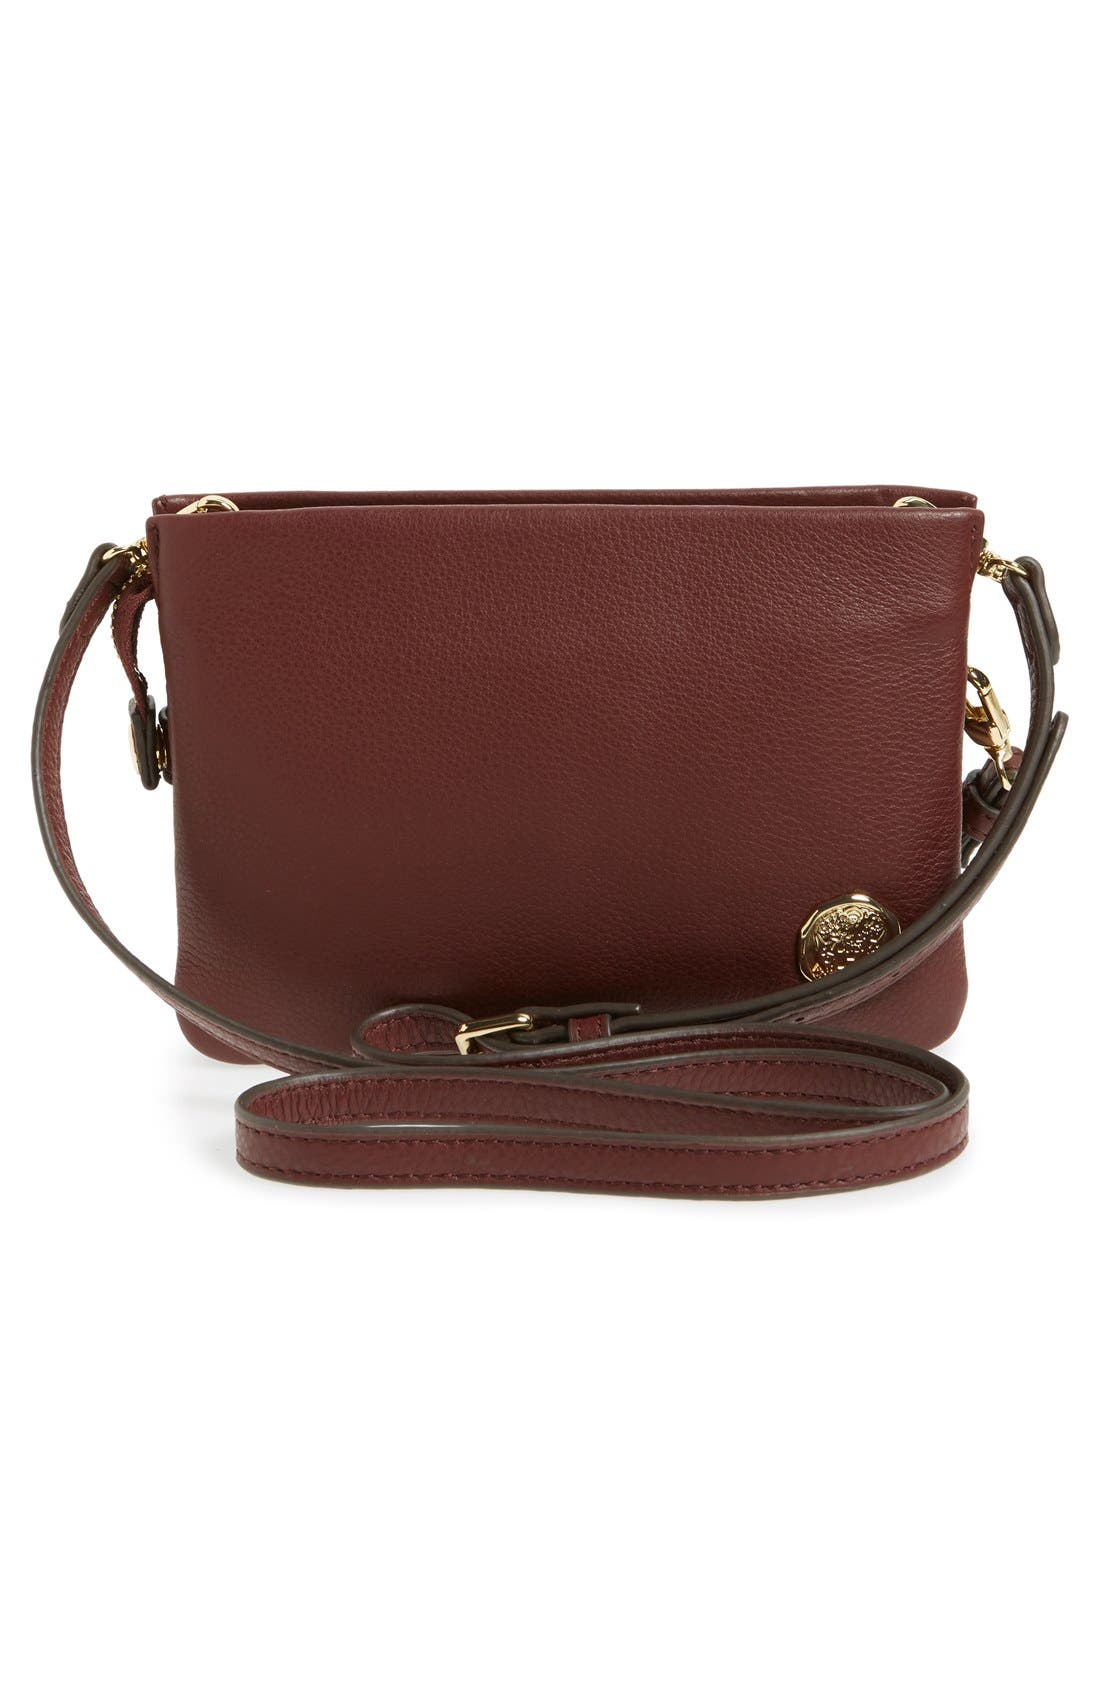 'Cami' Leather Crossbody Bag,                             Alternate thumbnail 101, color,